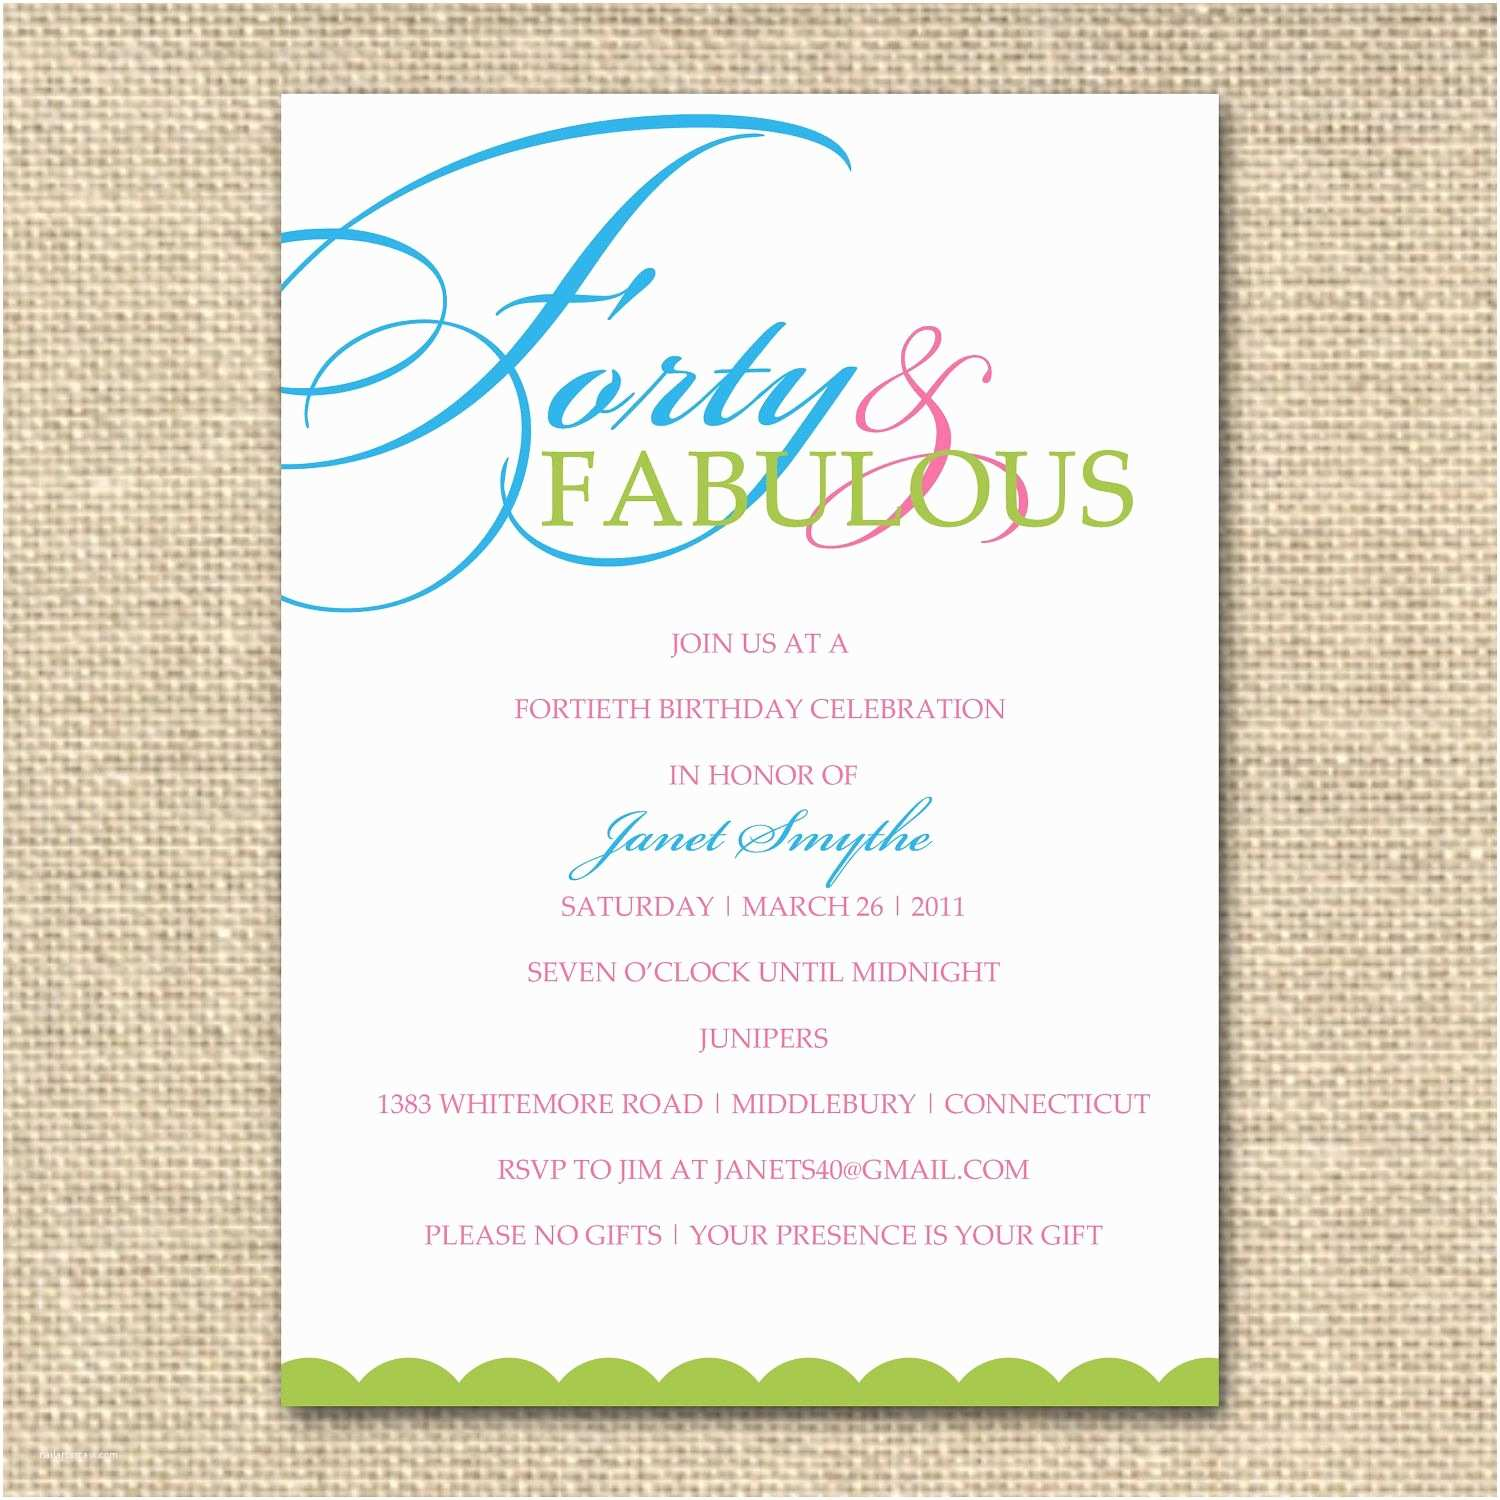 Party Invitation Sample Fantastic Funny 40th Birthday Invitations